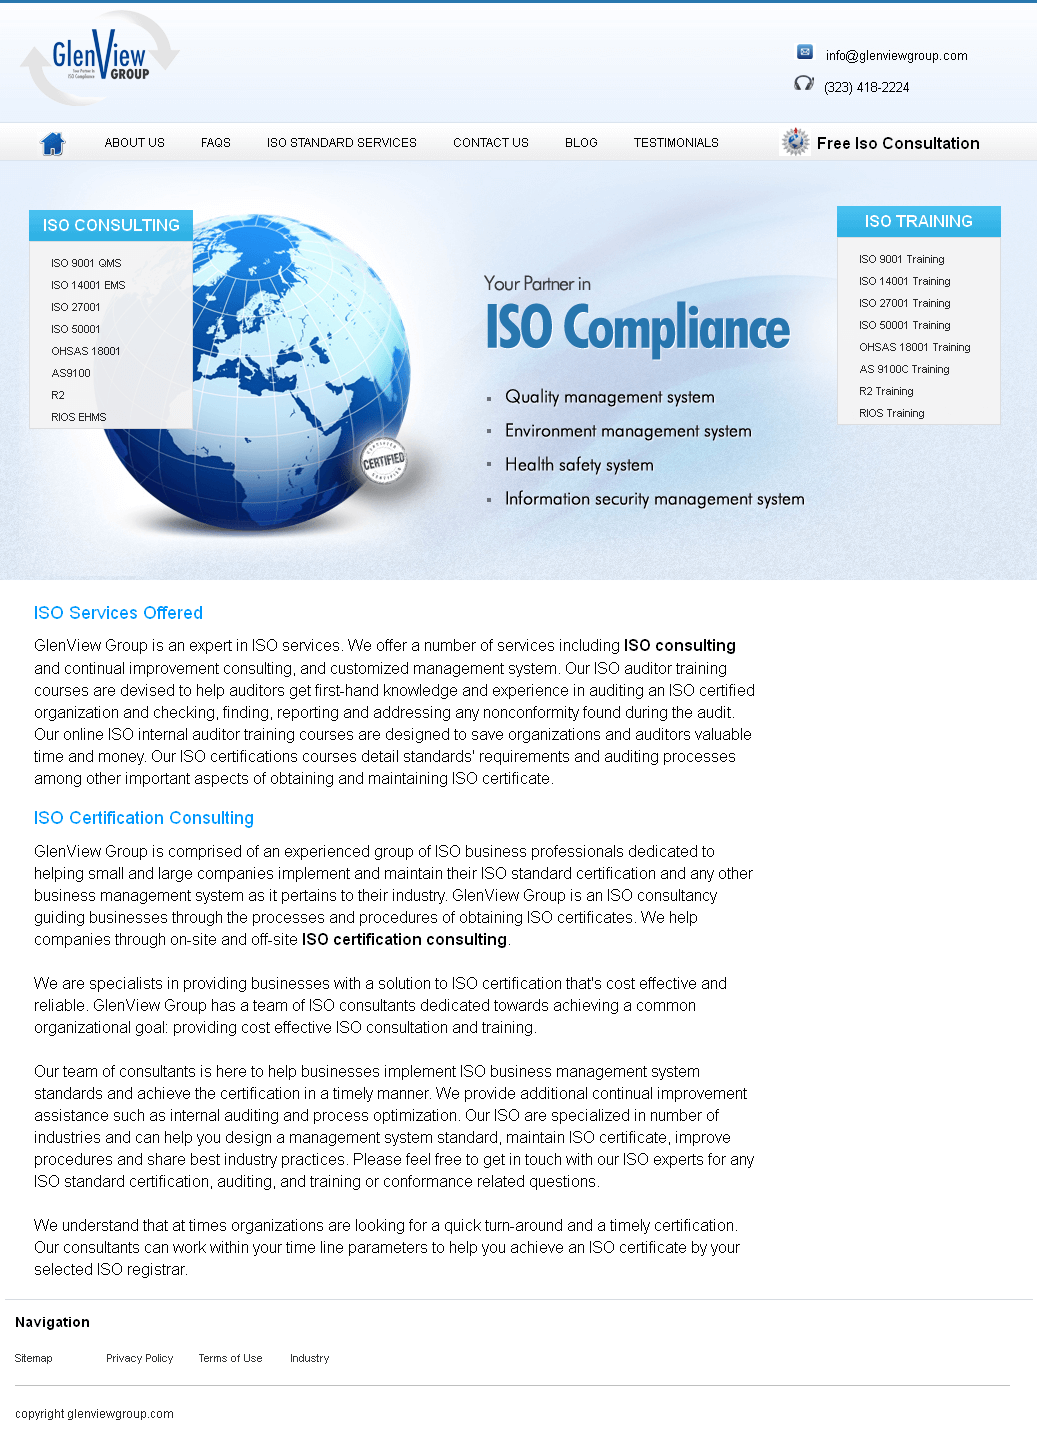 Website for ISO Consulting Service Provider 'GlenView' Using PHP